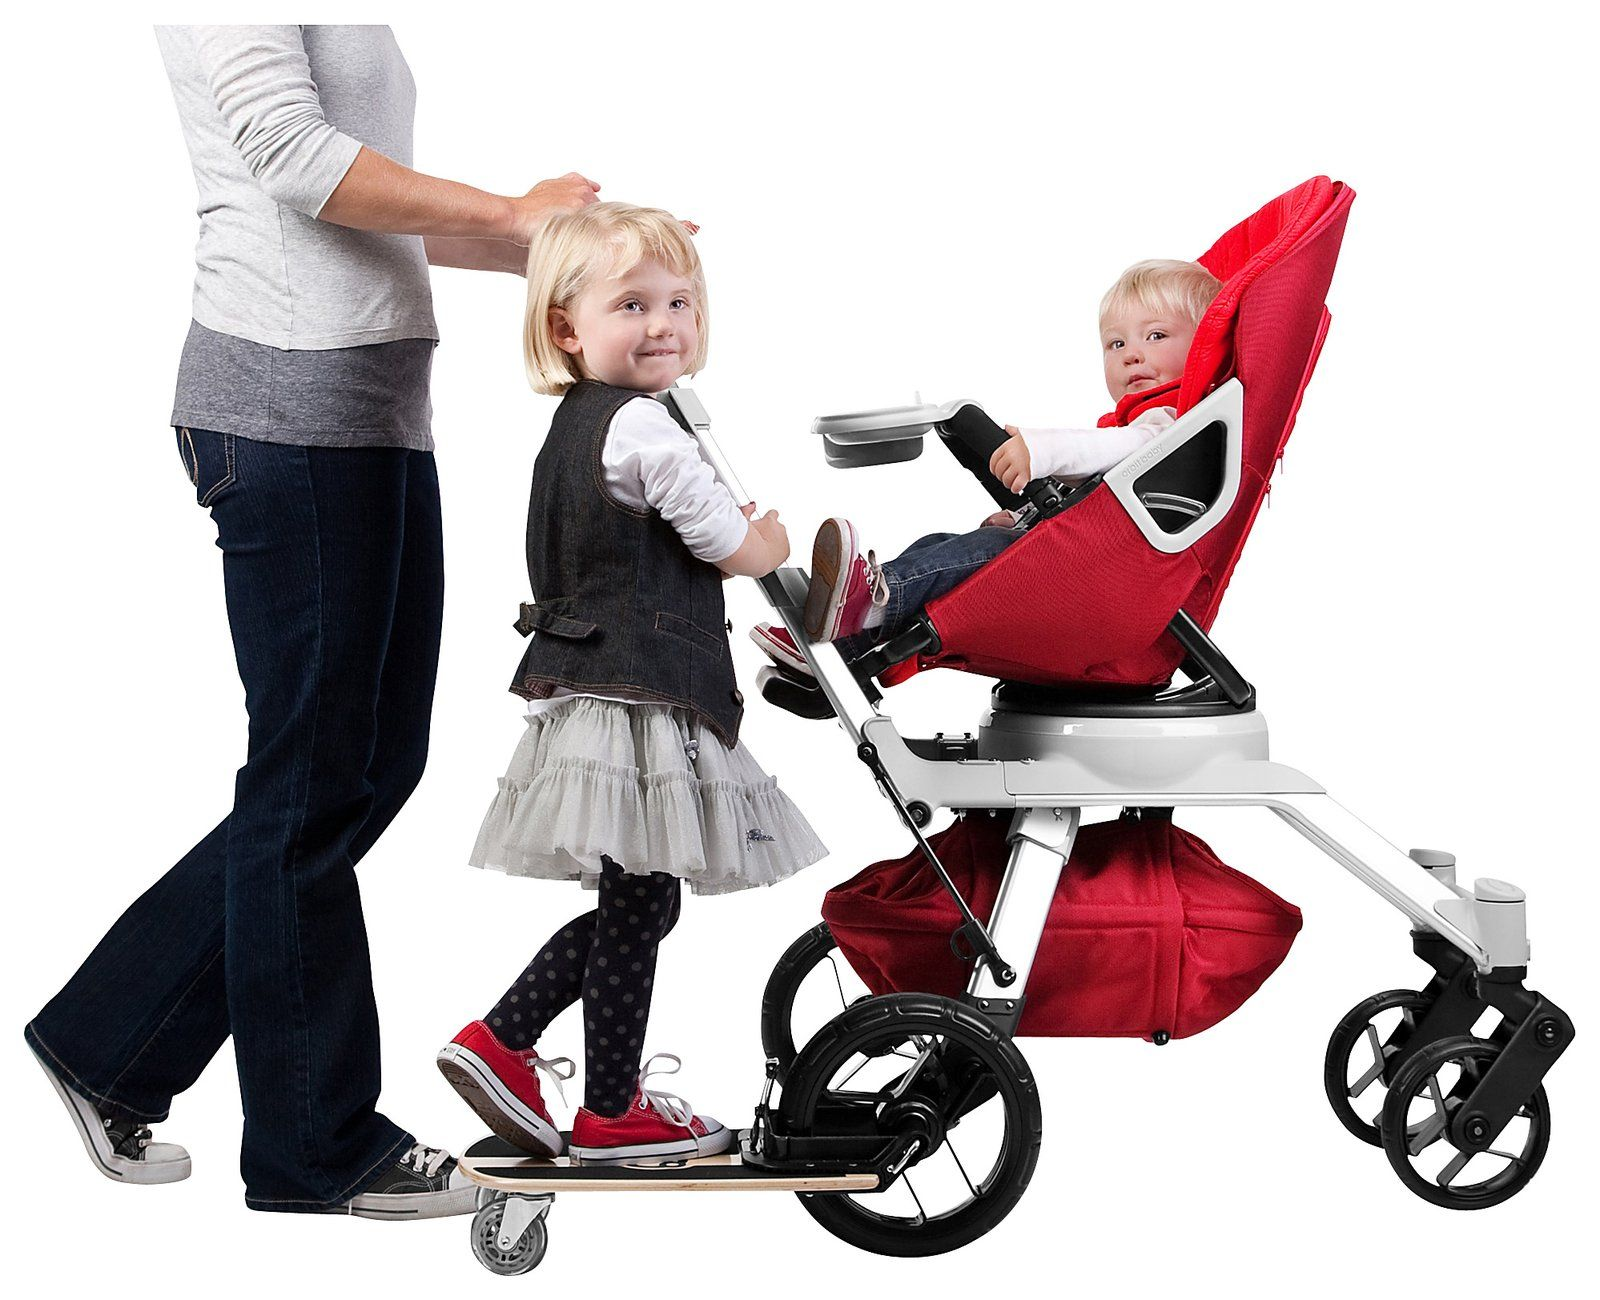 Orbit Baby Sidekick Stroller Board Best Price Orbit baby